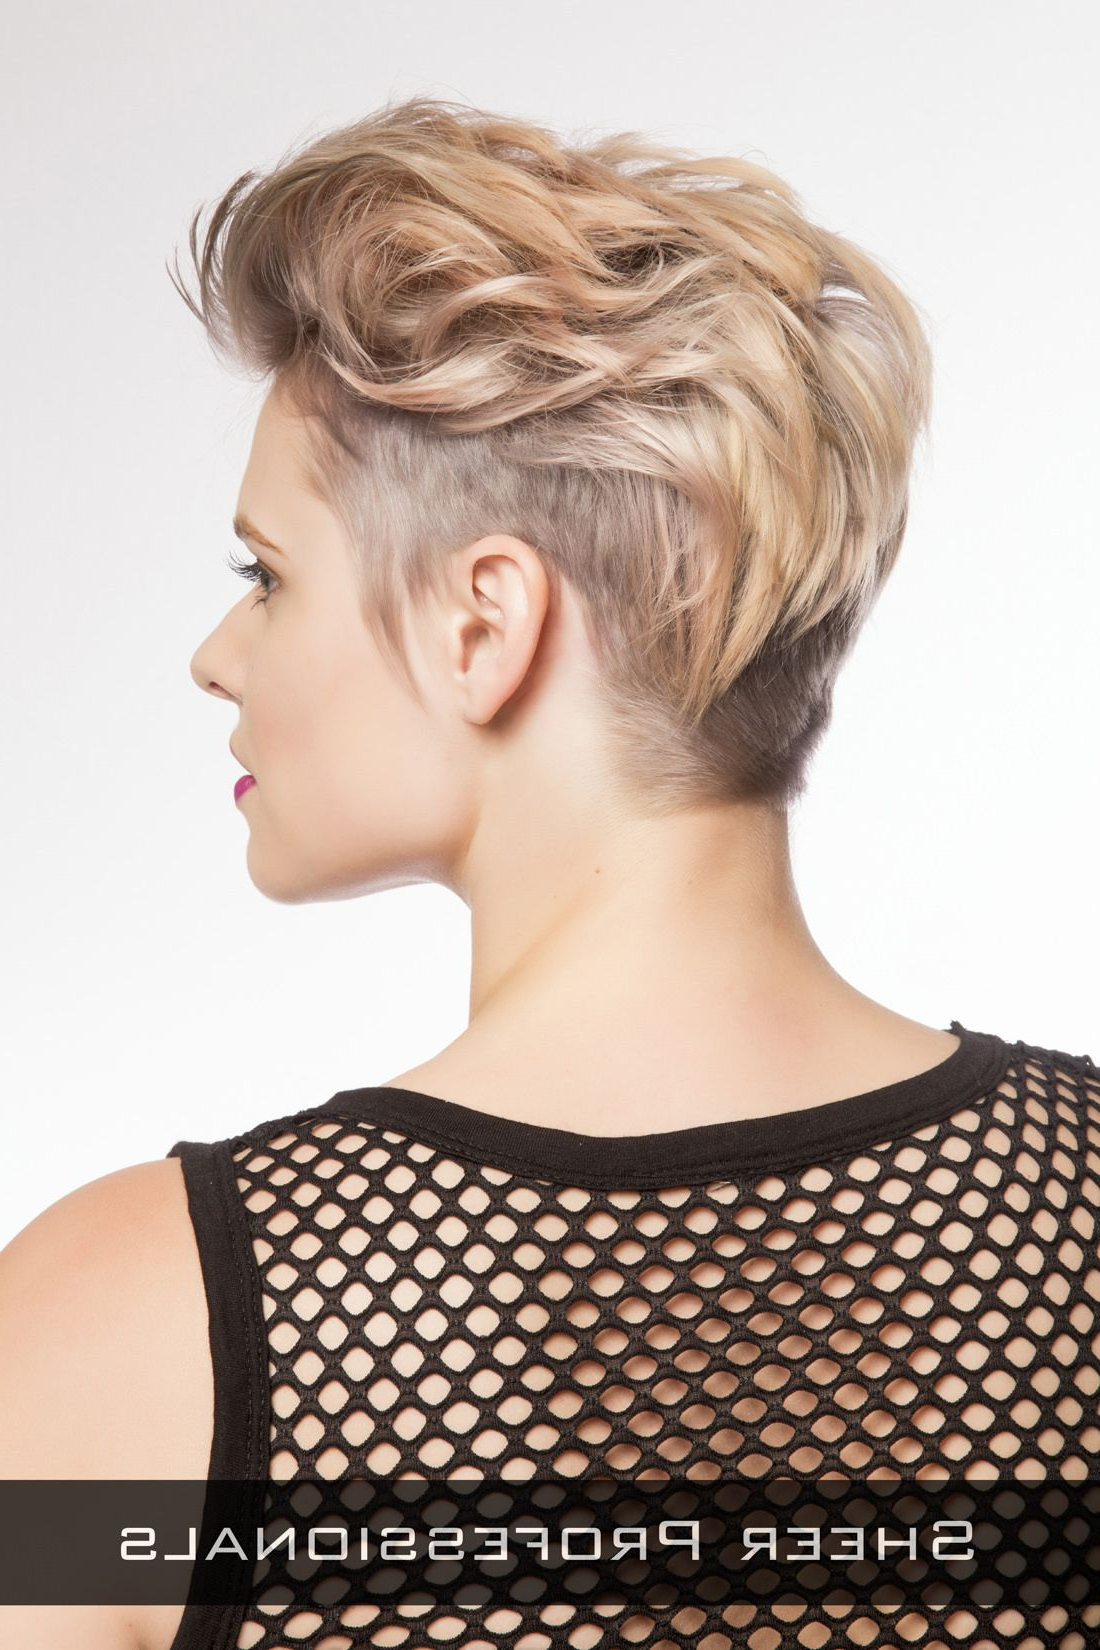 33 Flattering Short Hairstyles For Round Faces In 2018 | New Within Edgy Short Haircuts For Round Faces (View 13 of 25)